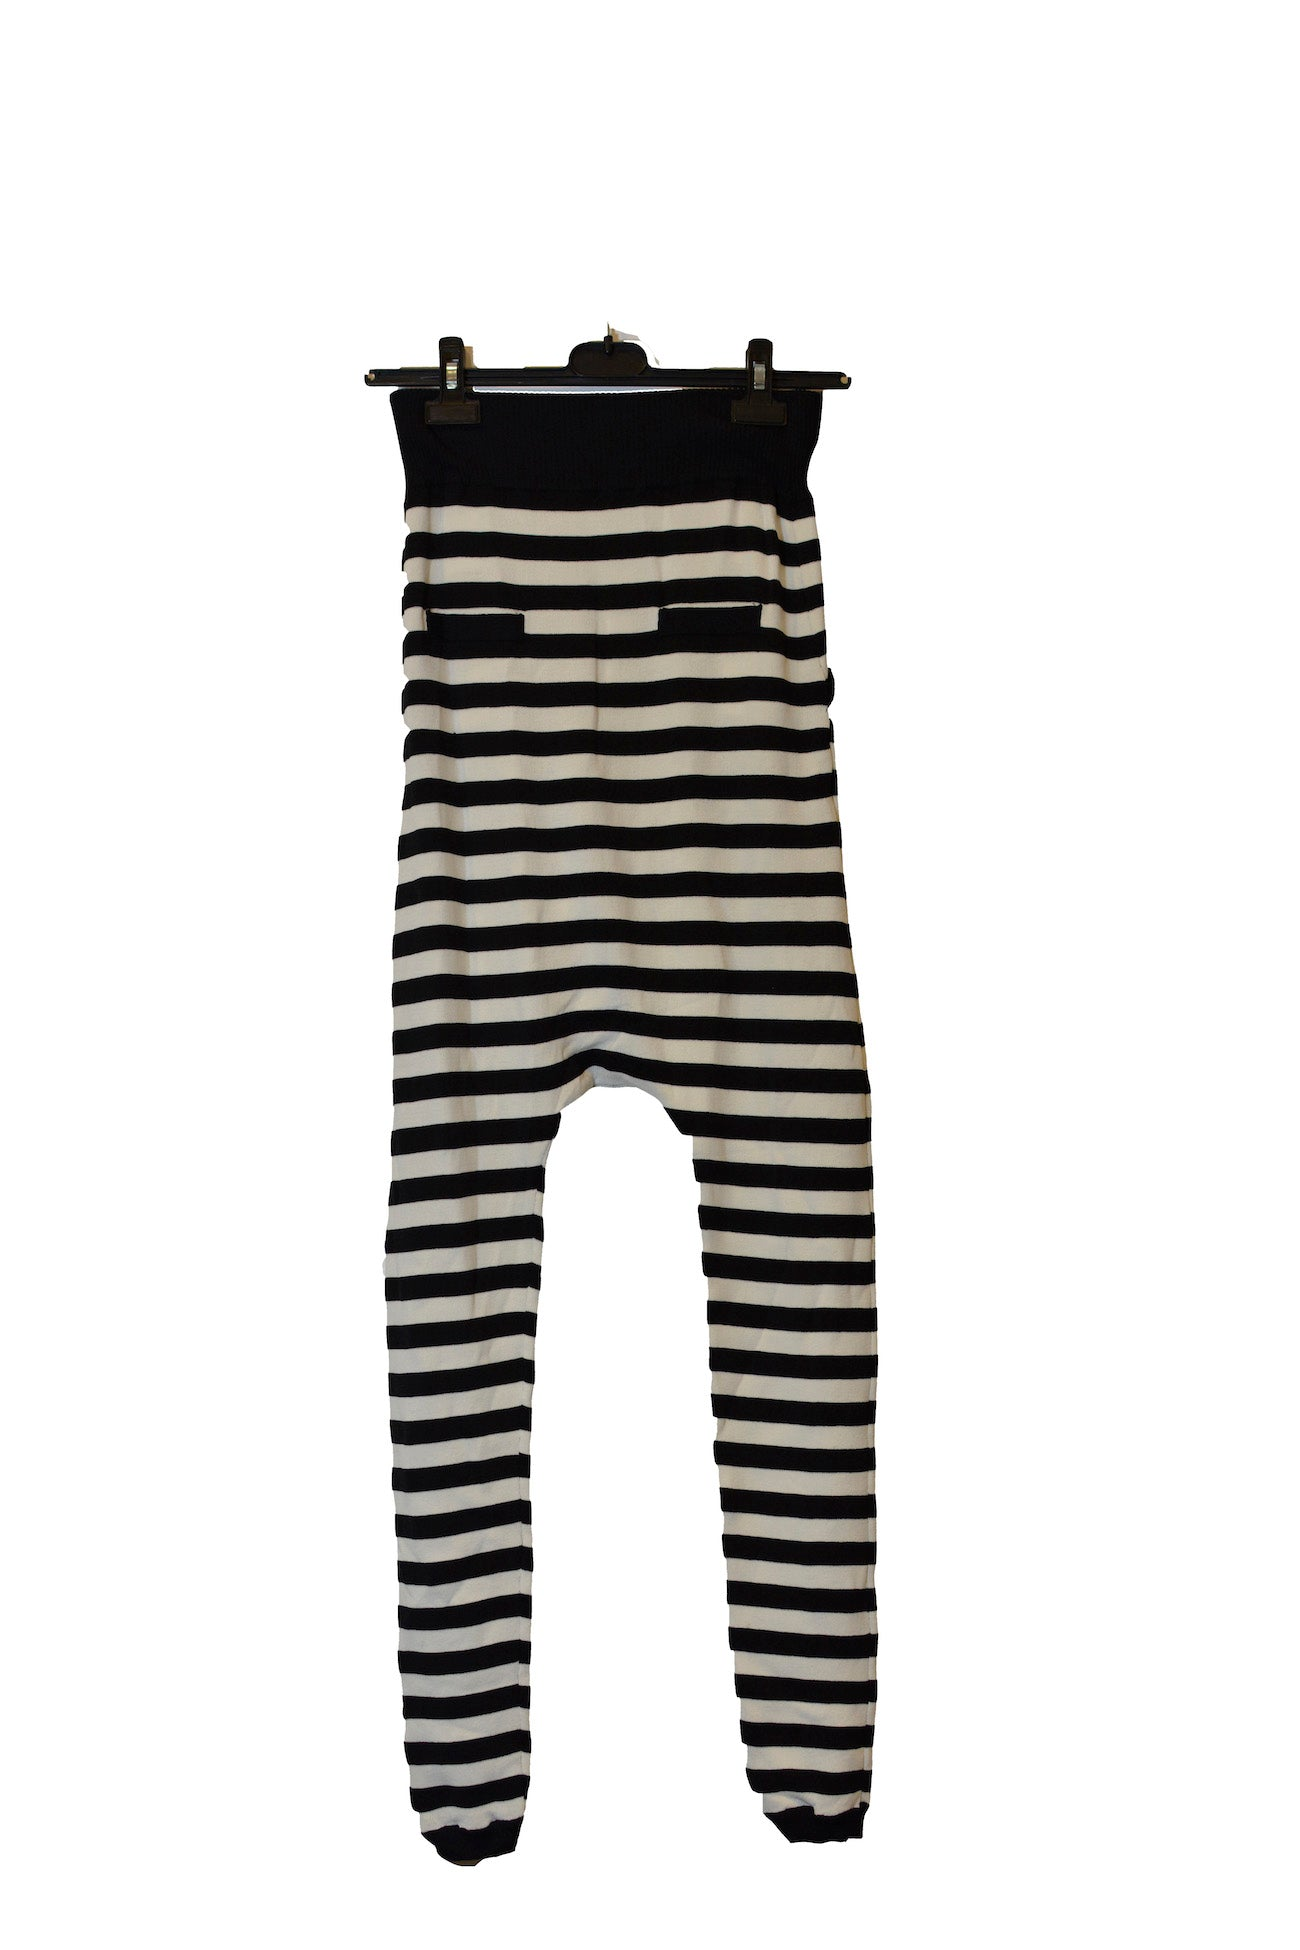 High Waisted Black/White Striped Harem Pants With Cuffs